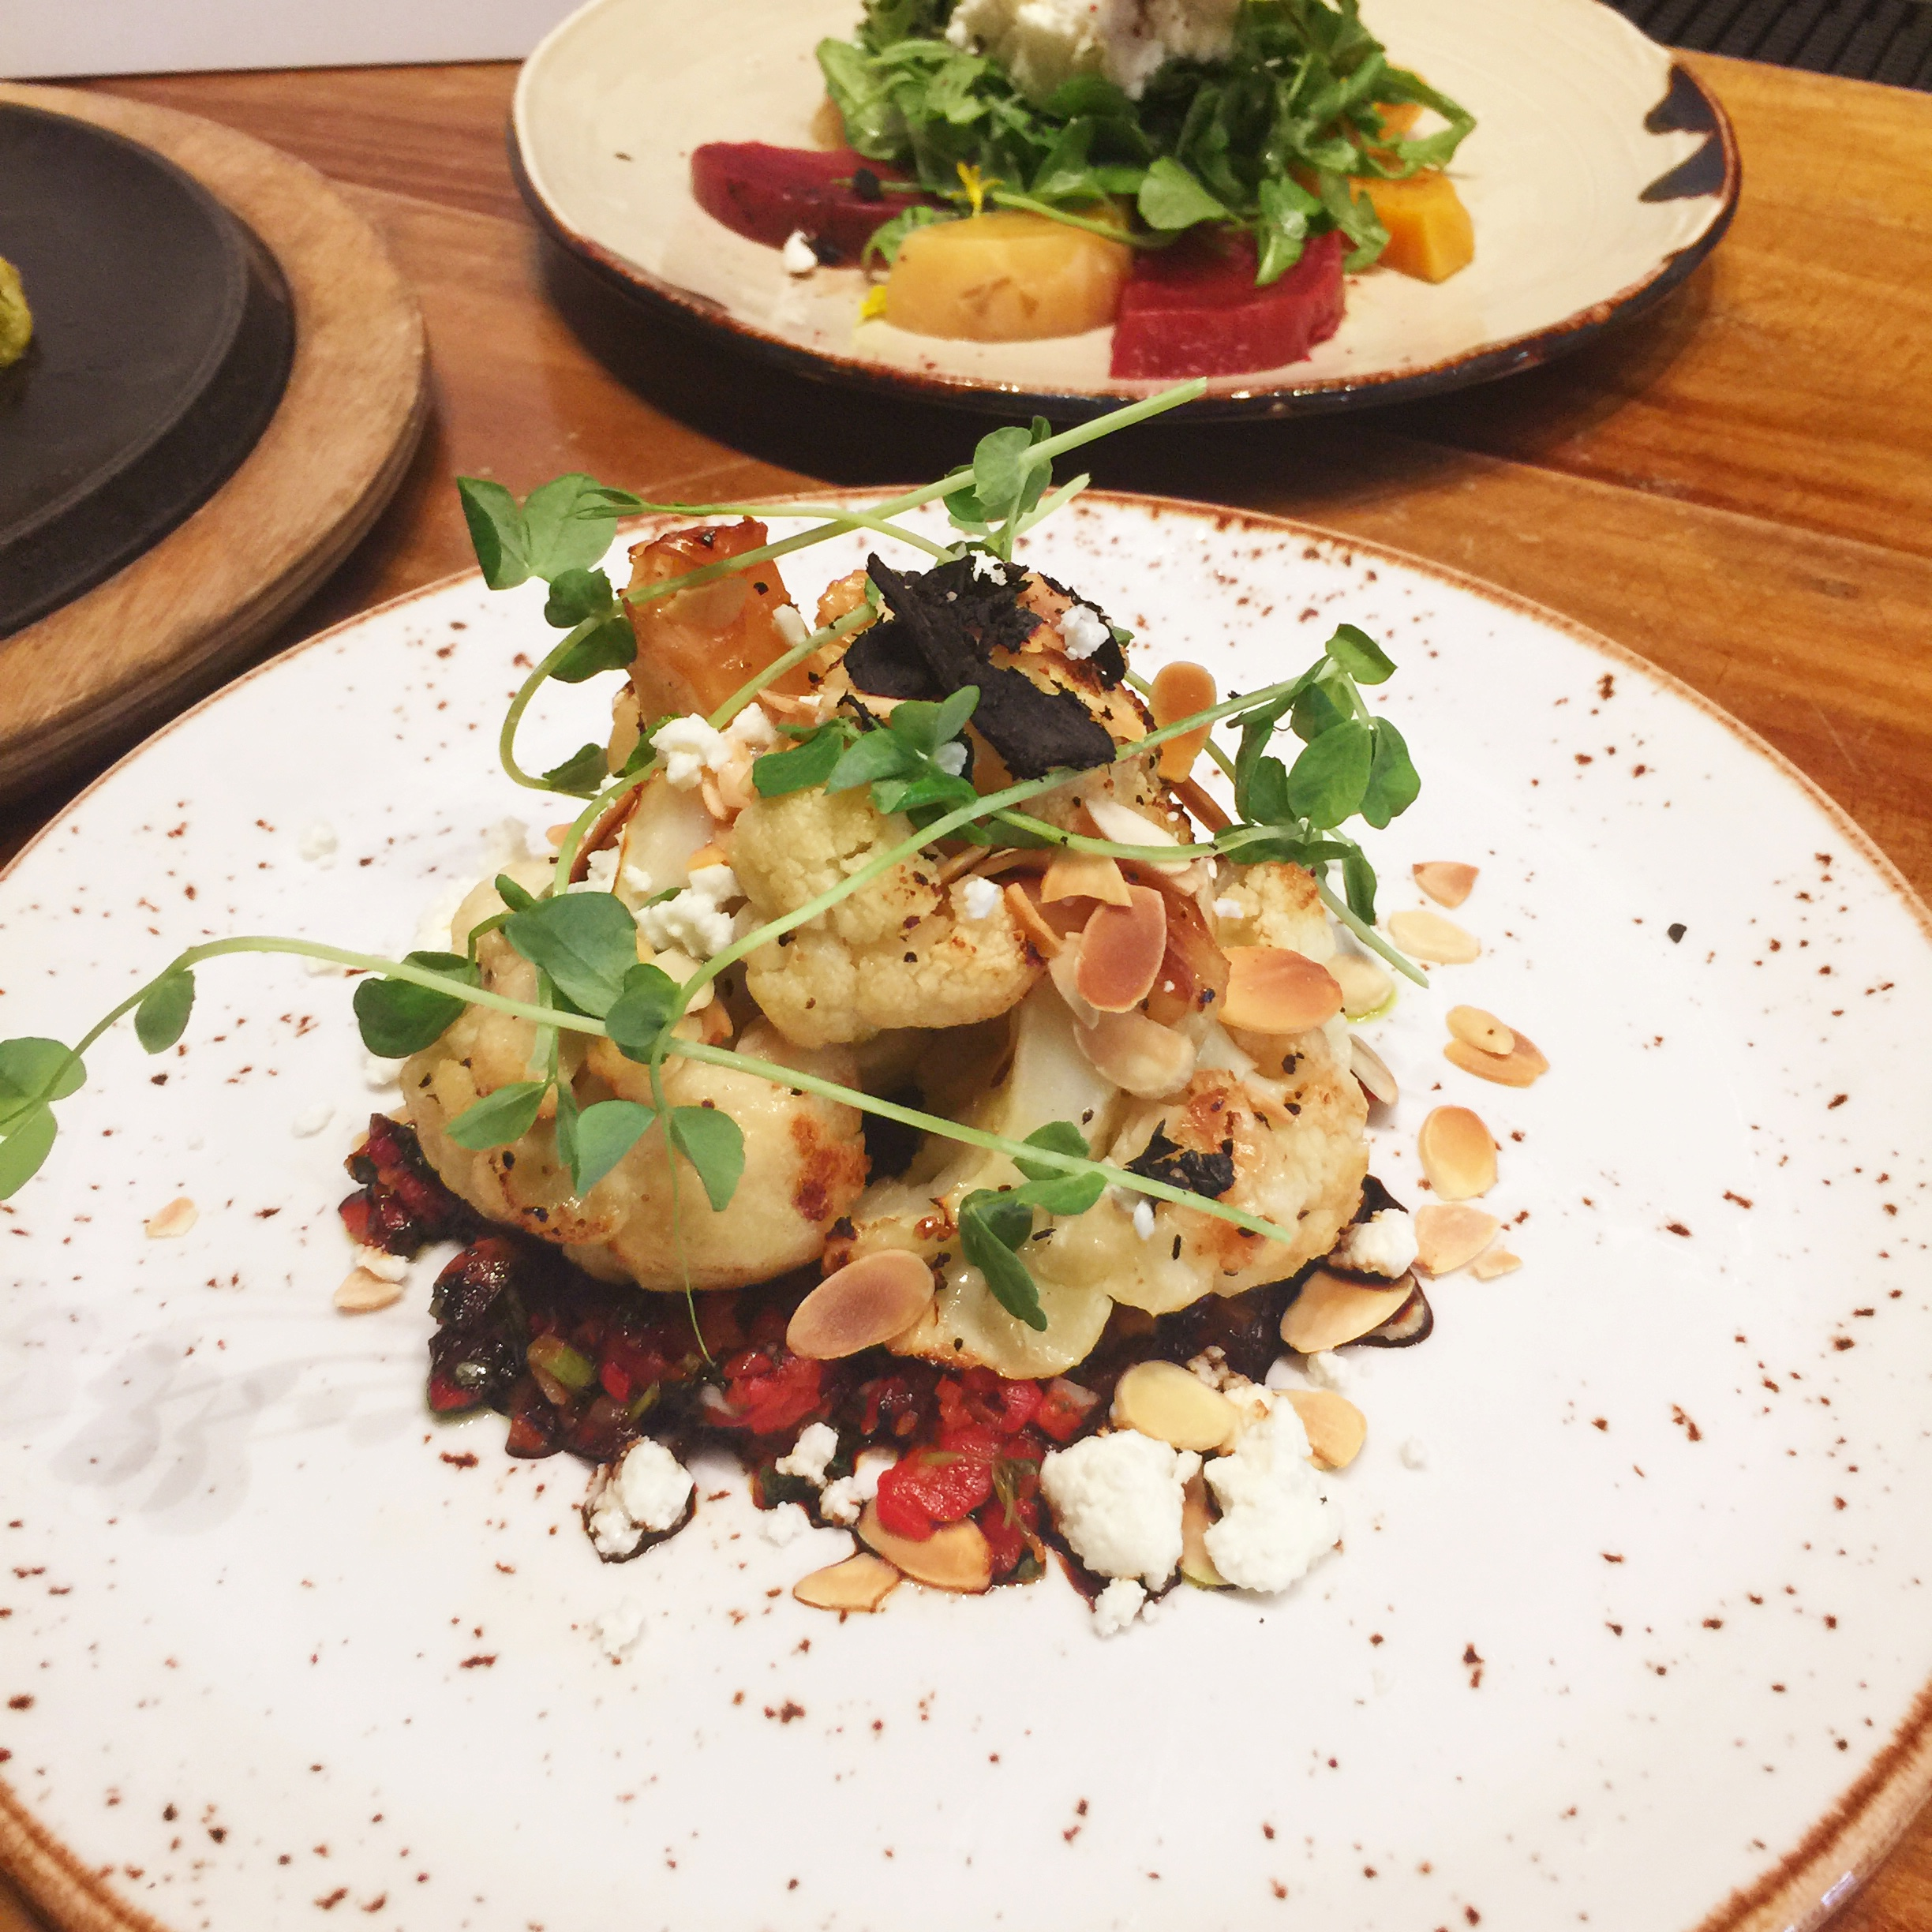 Cauliflower at Honeysuckle Local & Social by Angela Roberts